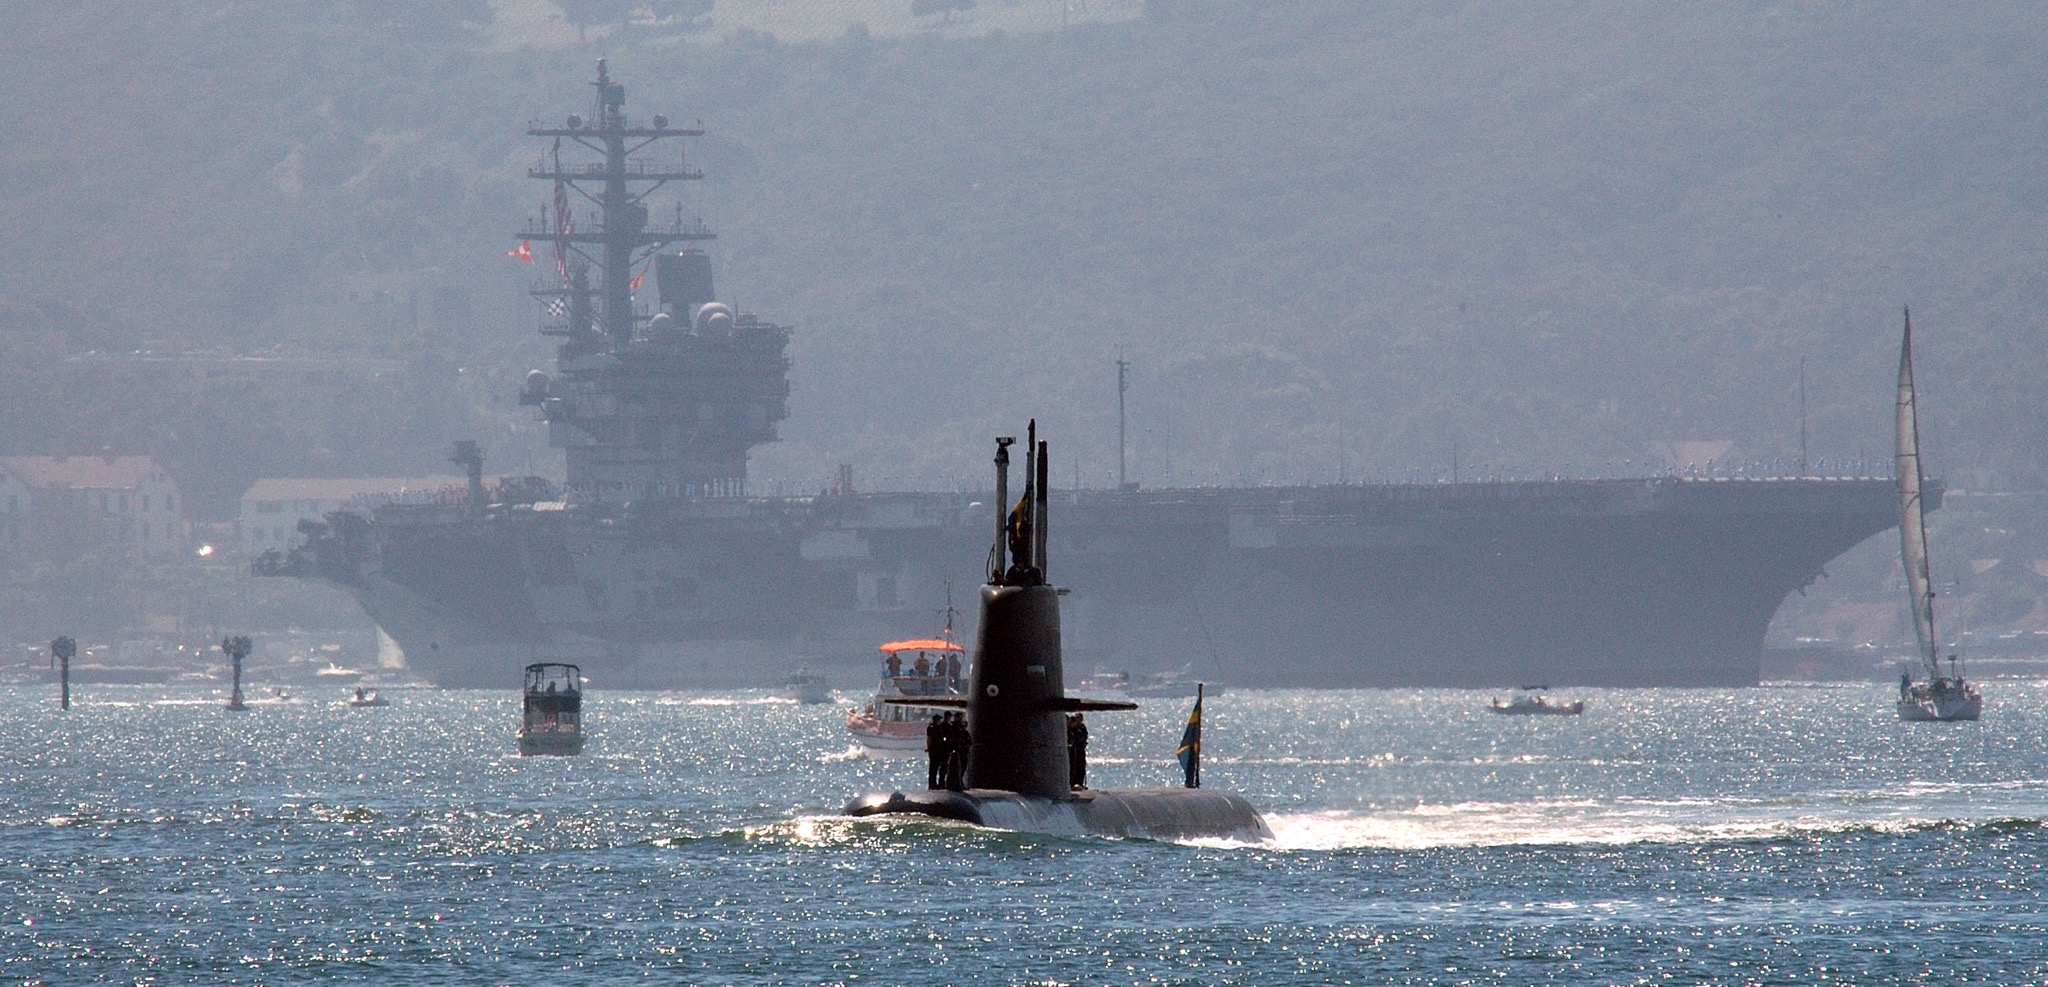 Swedish sub Gotland at Naval Station San Diego, Calif. with USS Ronald Reagan (CVN-76) in the background. US Navy Photo